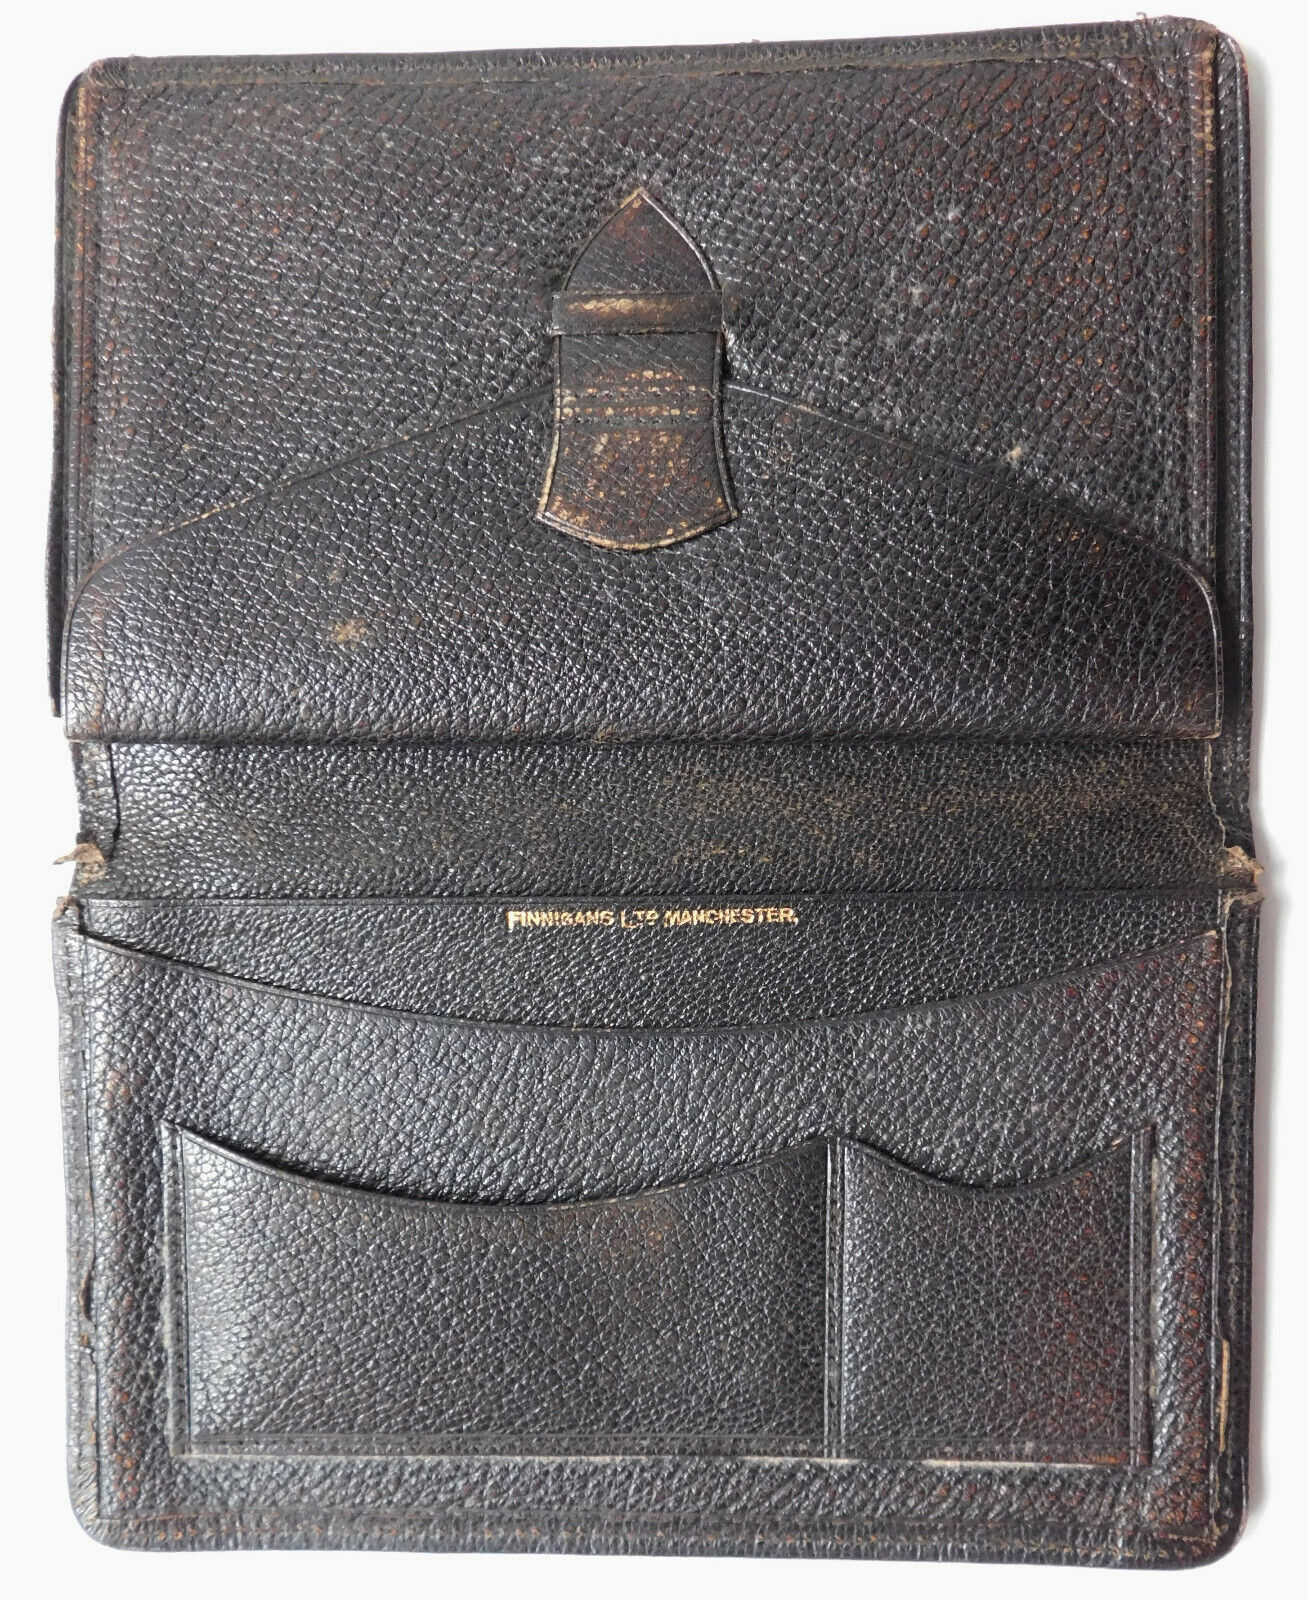 Vintage morocco leather wallet Finnigans Manchester dark brown NEEDS REPAIR